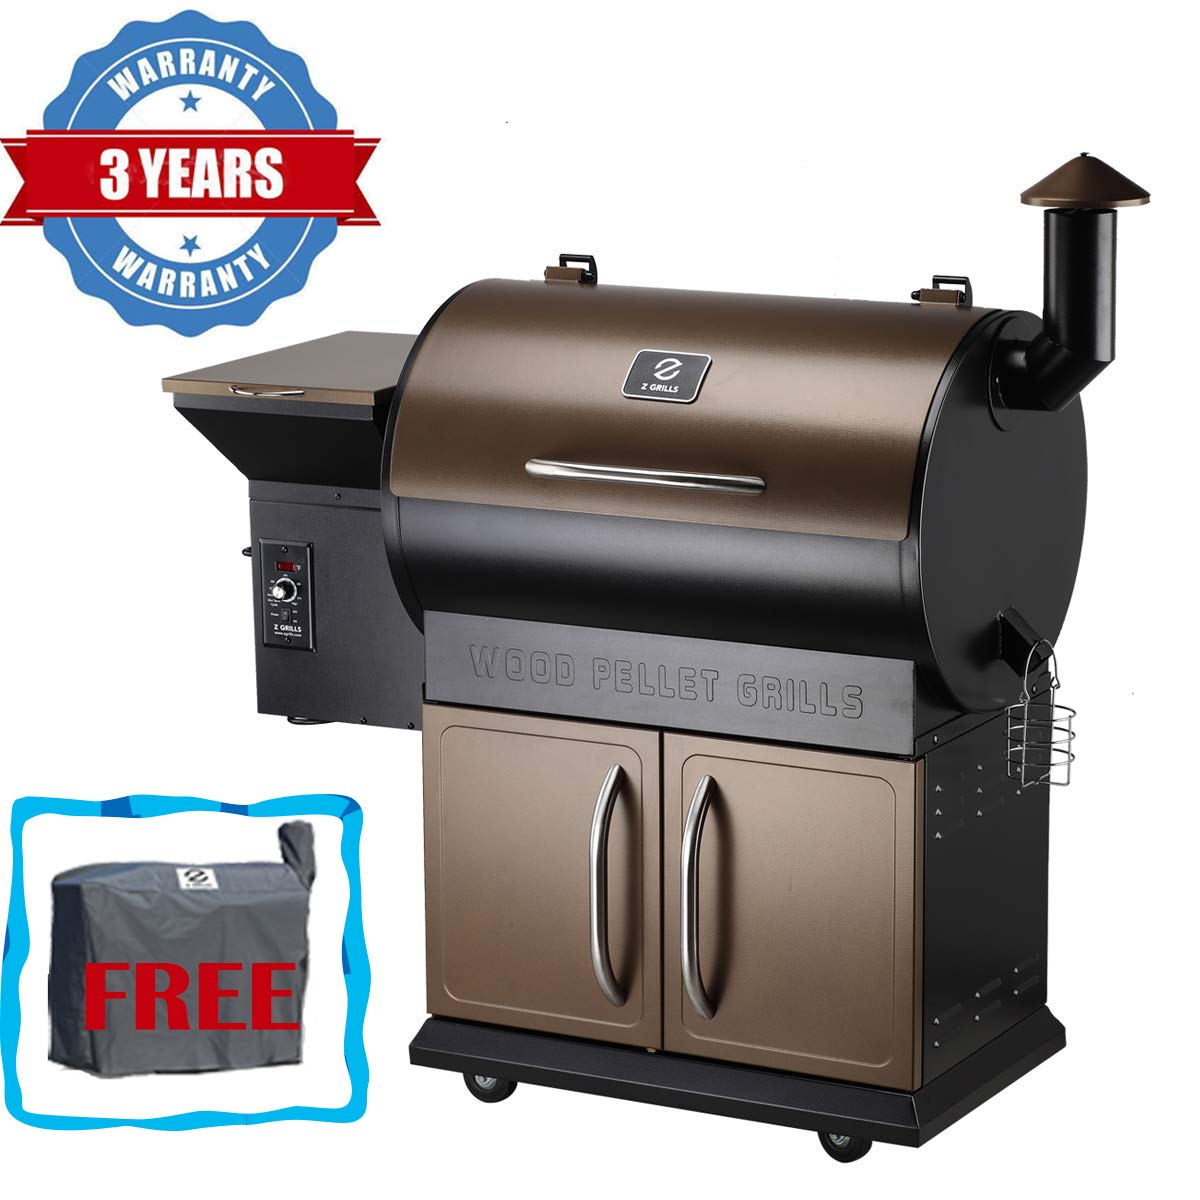 Z Grills Wood Pellet Grill & Smoker with Patio Cover